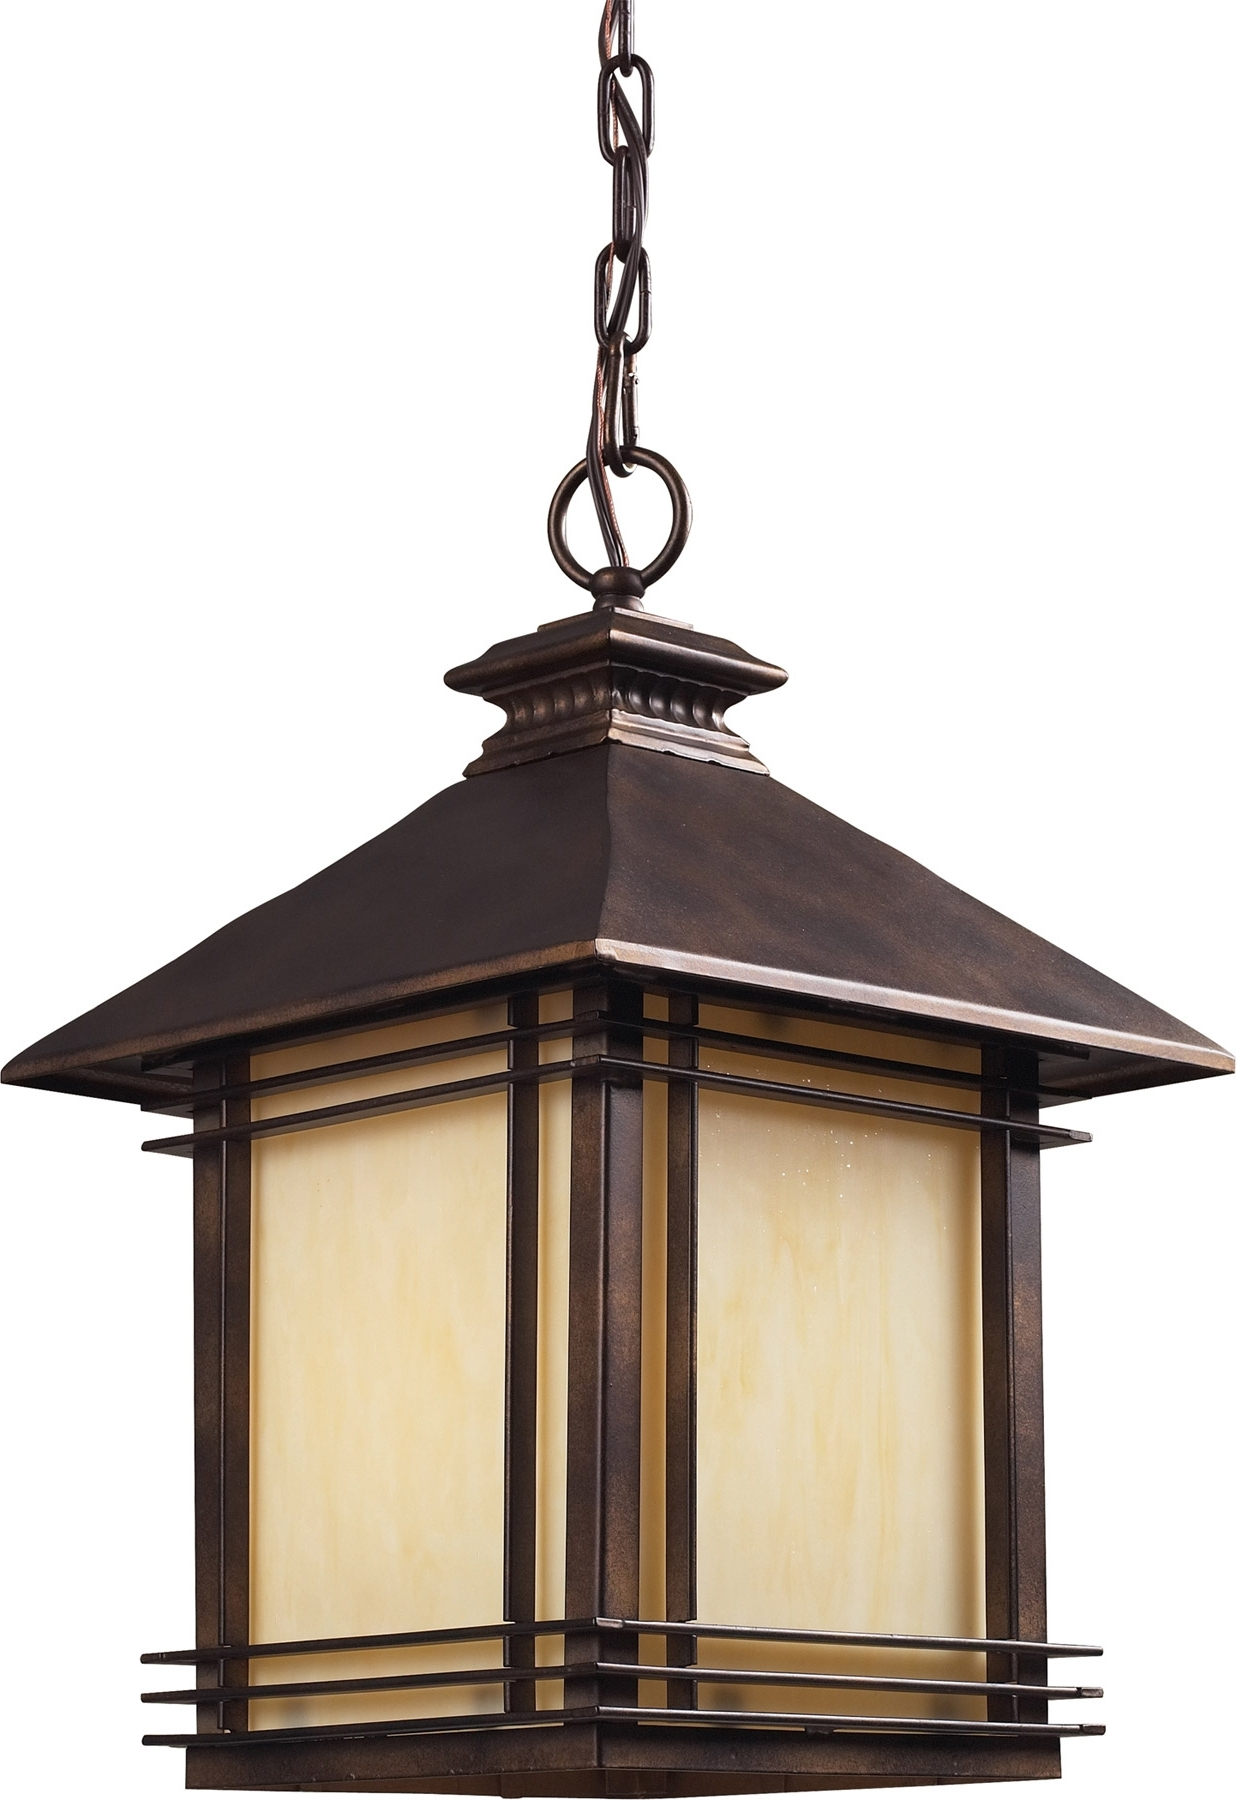 Hanging Outdoor Lights With Regard To Well Known Outdoor Hanging Lanterns – Nurani (View 19 of 20)